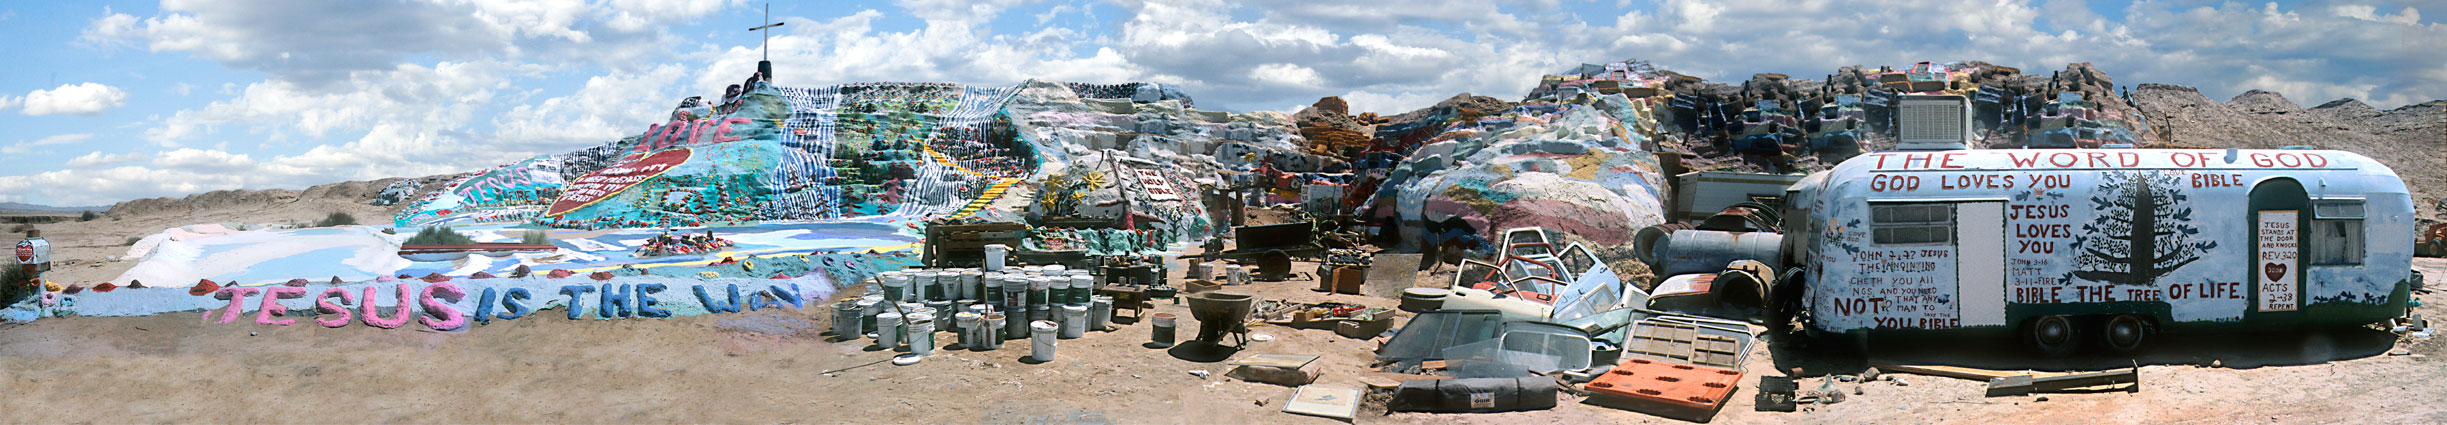 Salvation Mountain #4, California, 2008